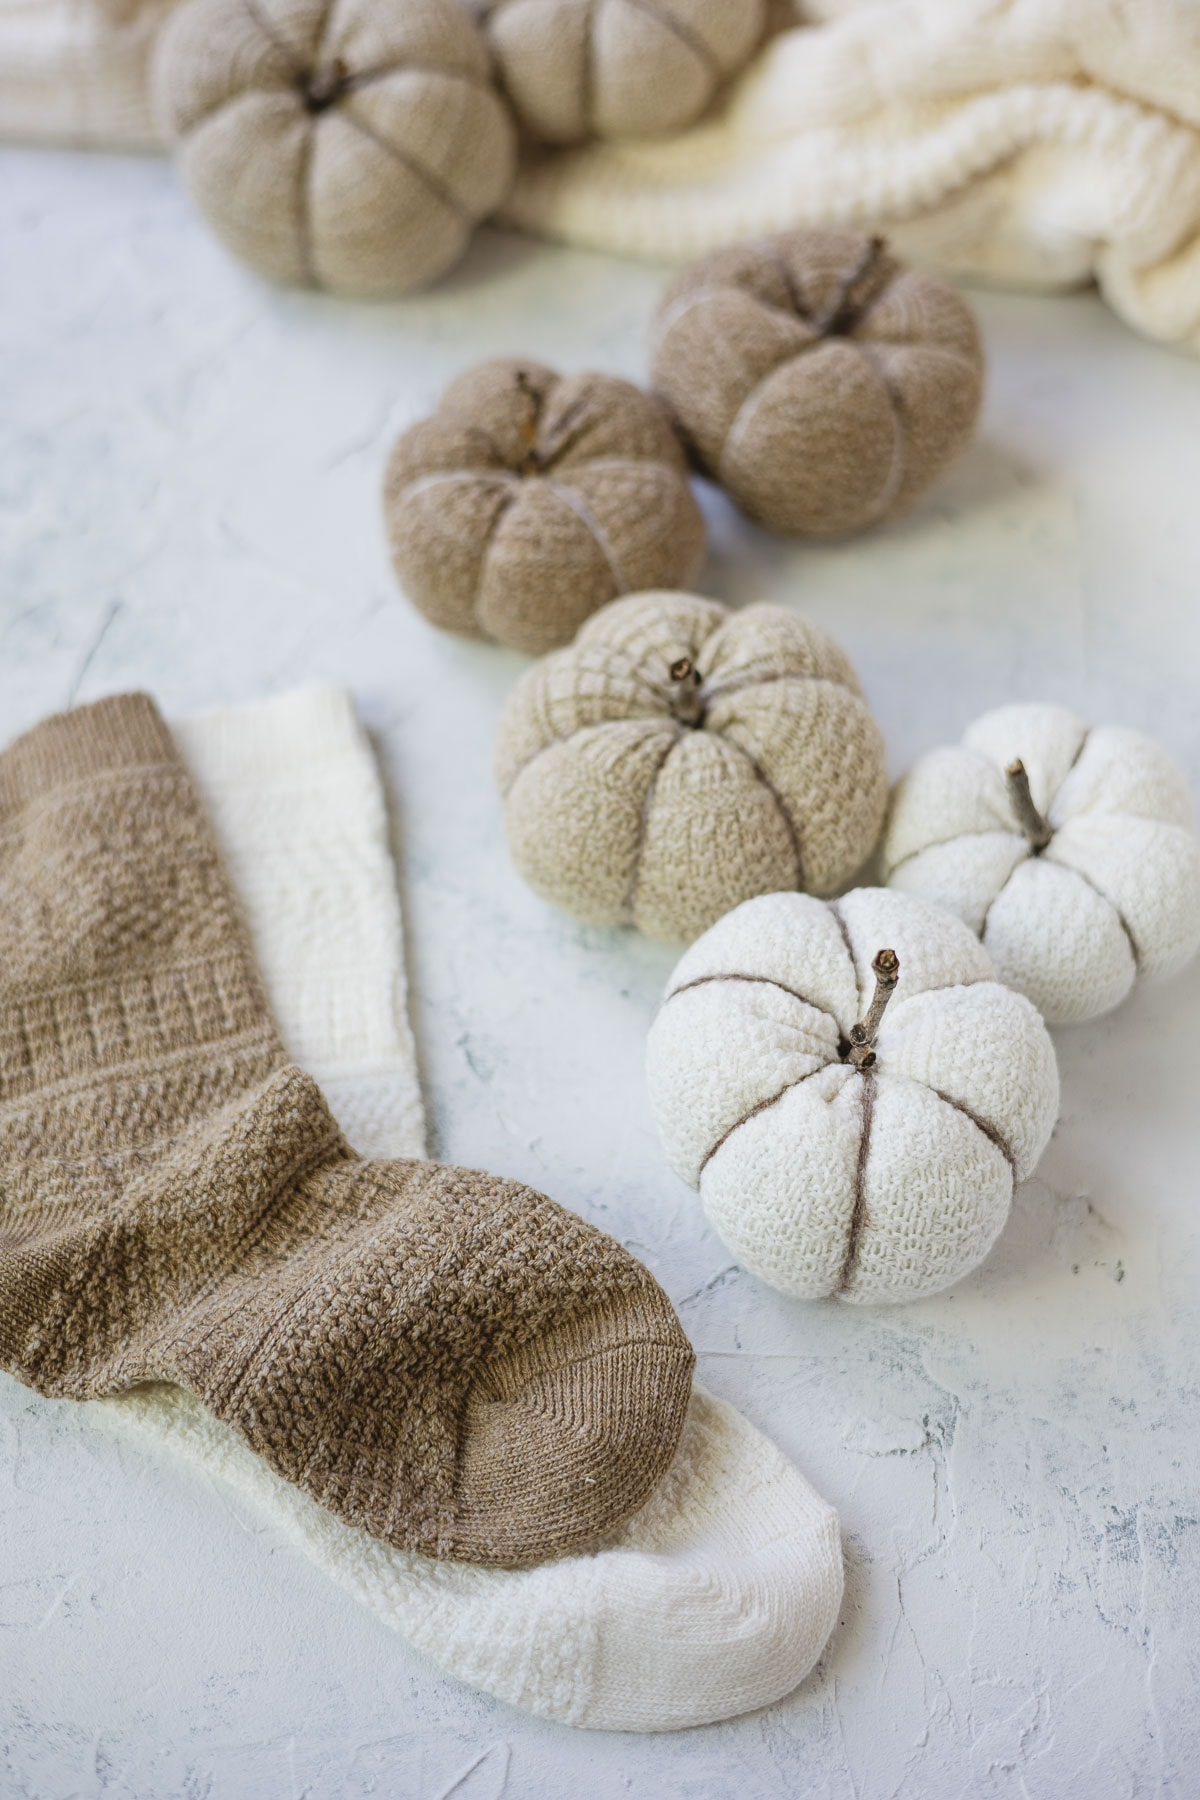 Socks and small decorative pumpkins made from socks.